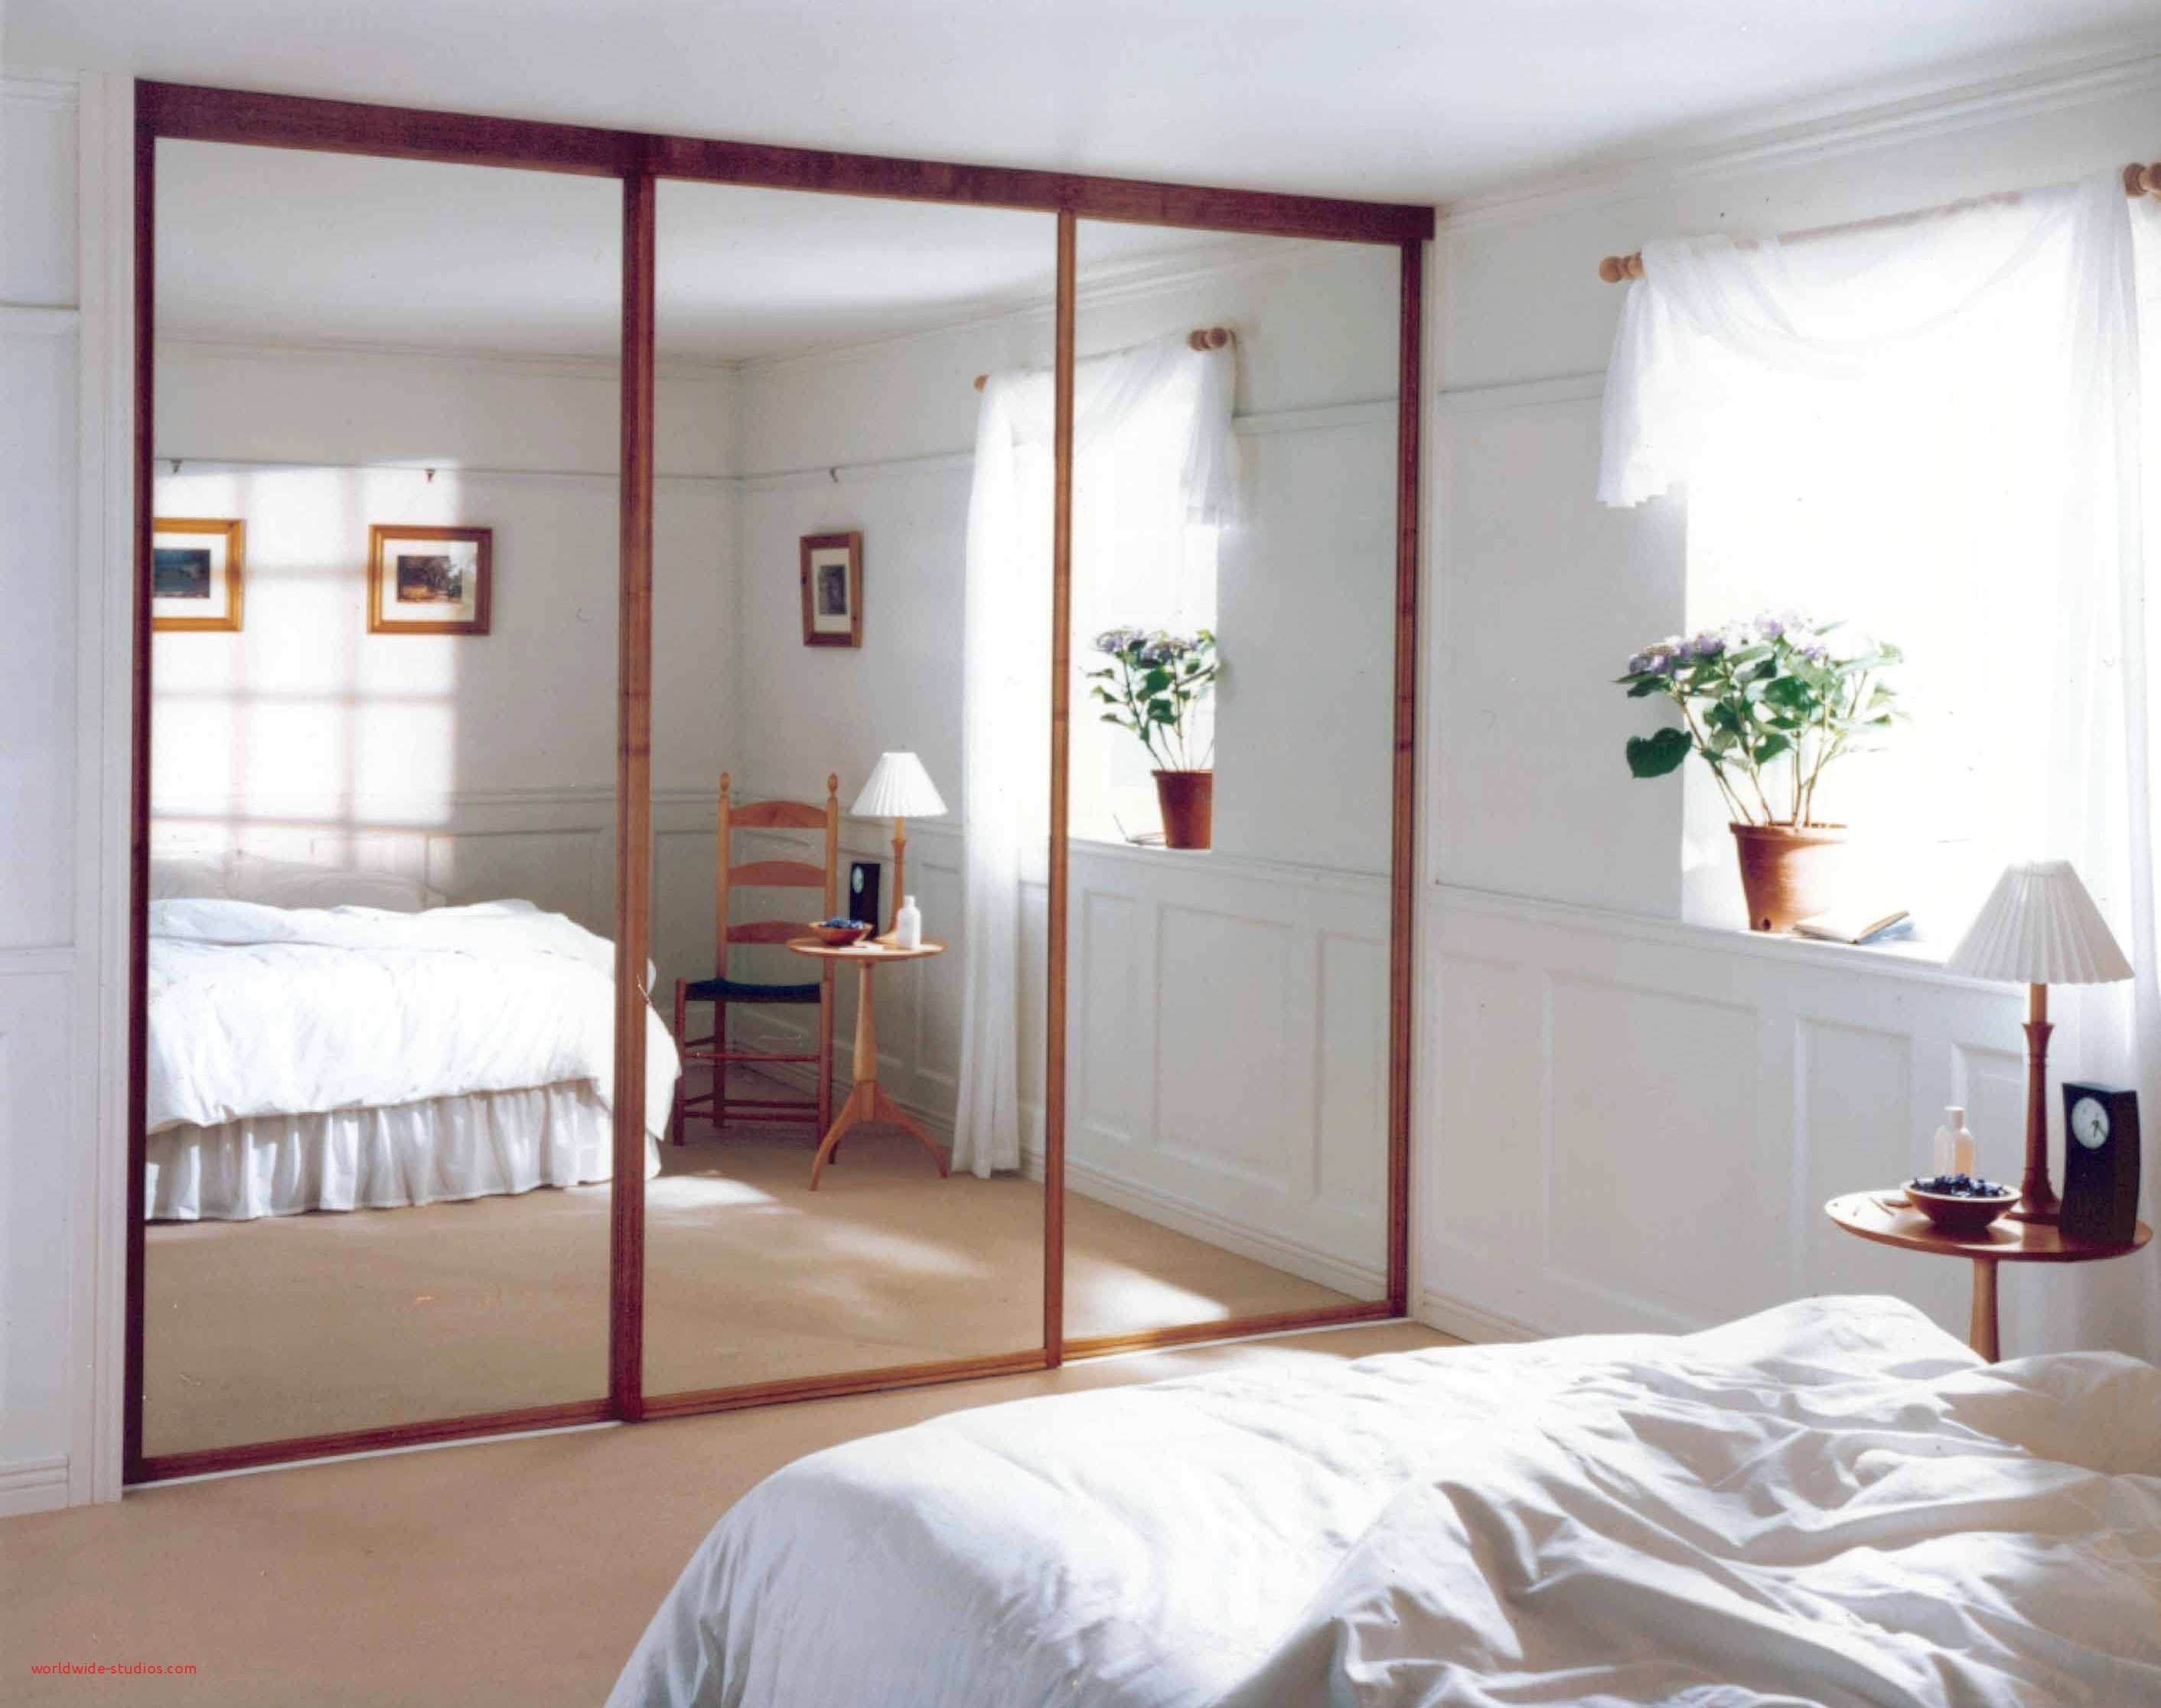 Top Result Diy Wood Frame for Mirror Lovely Mirrored Closet Doors